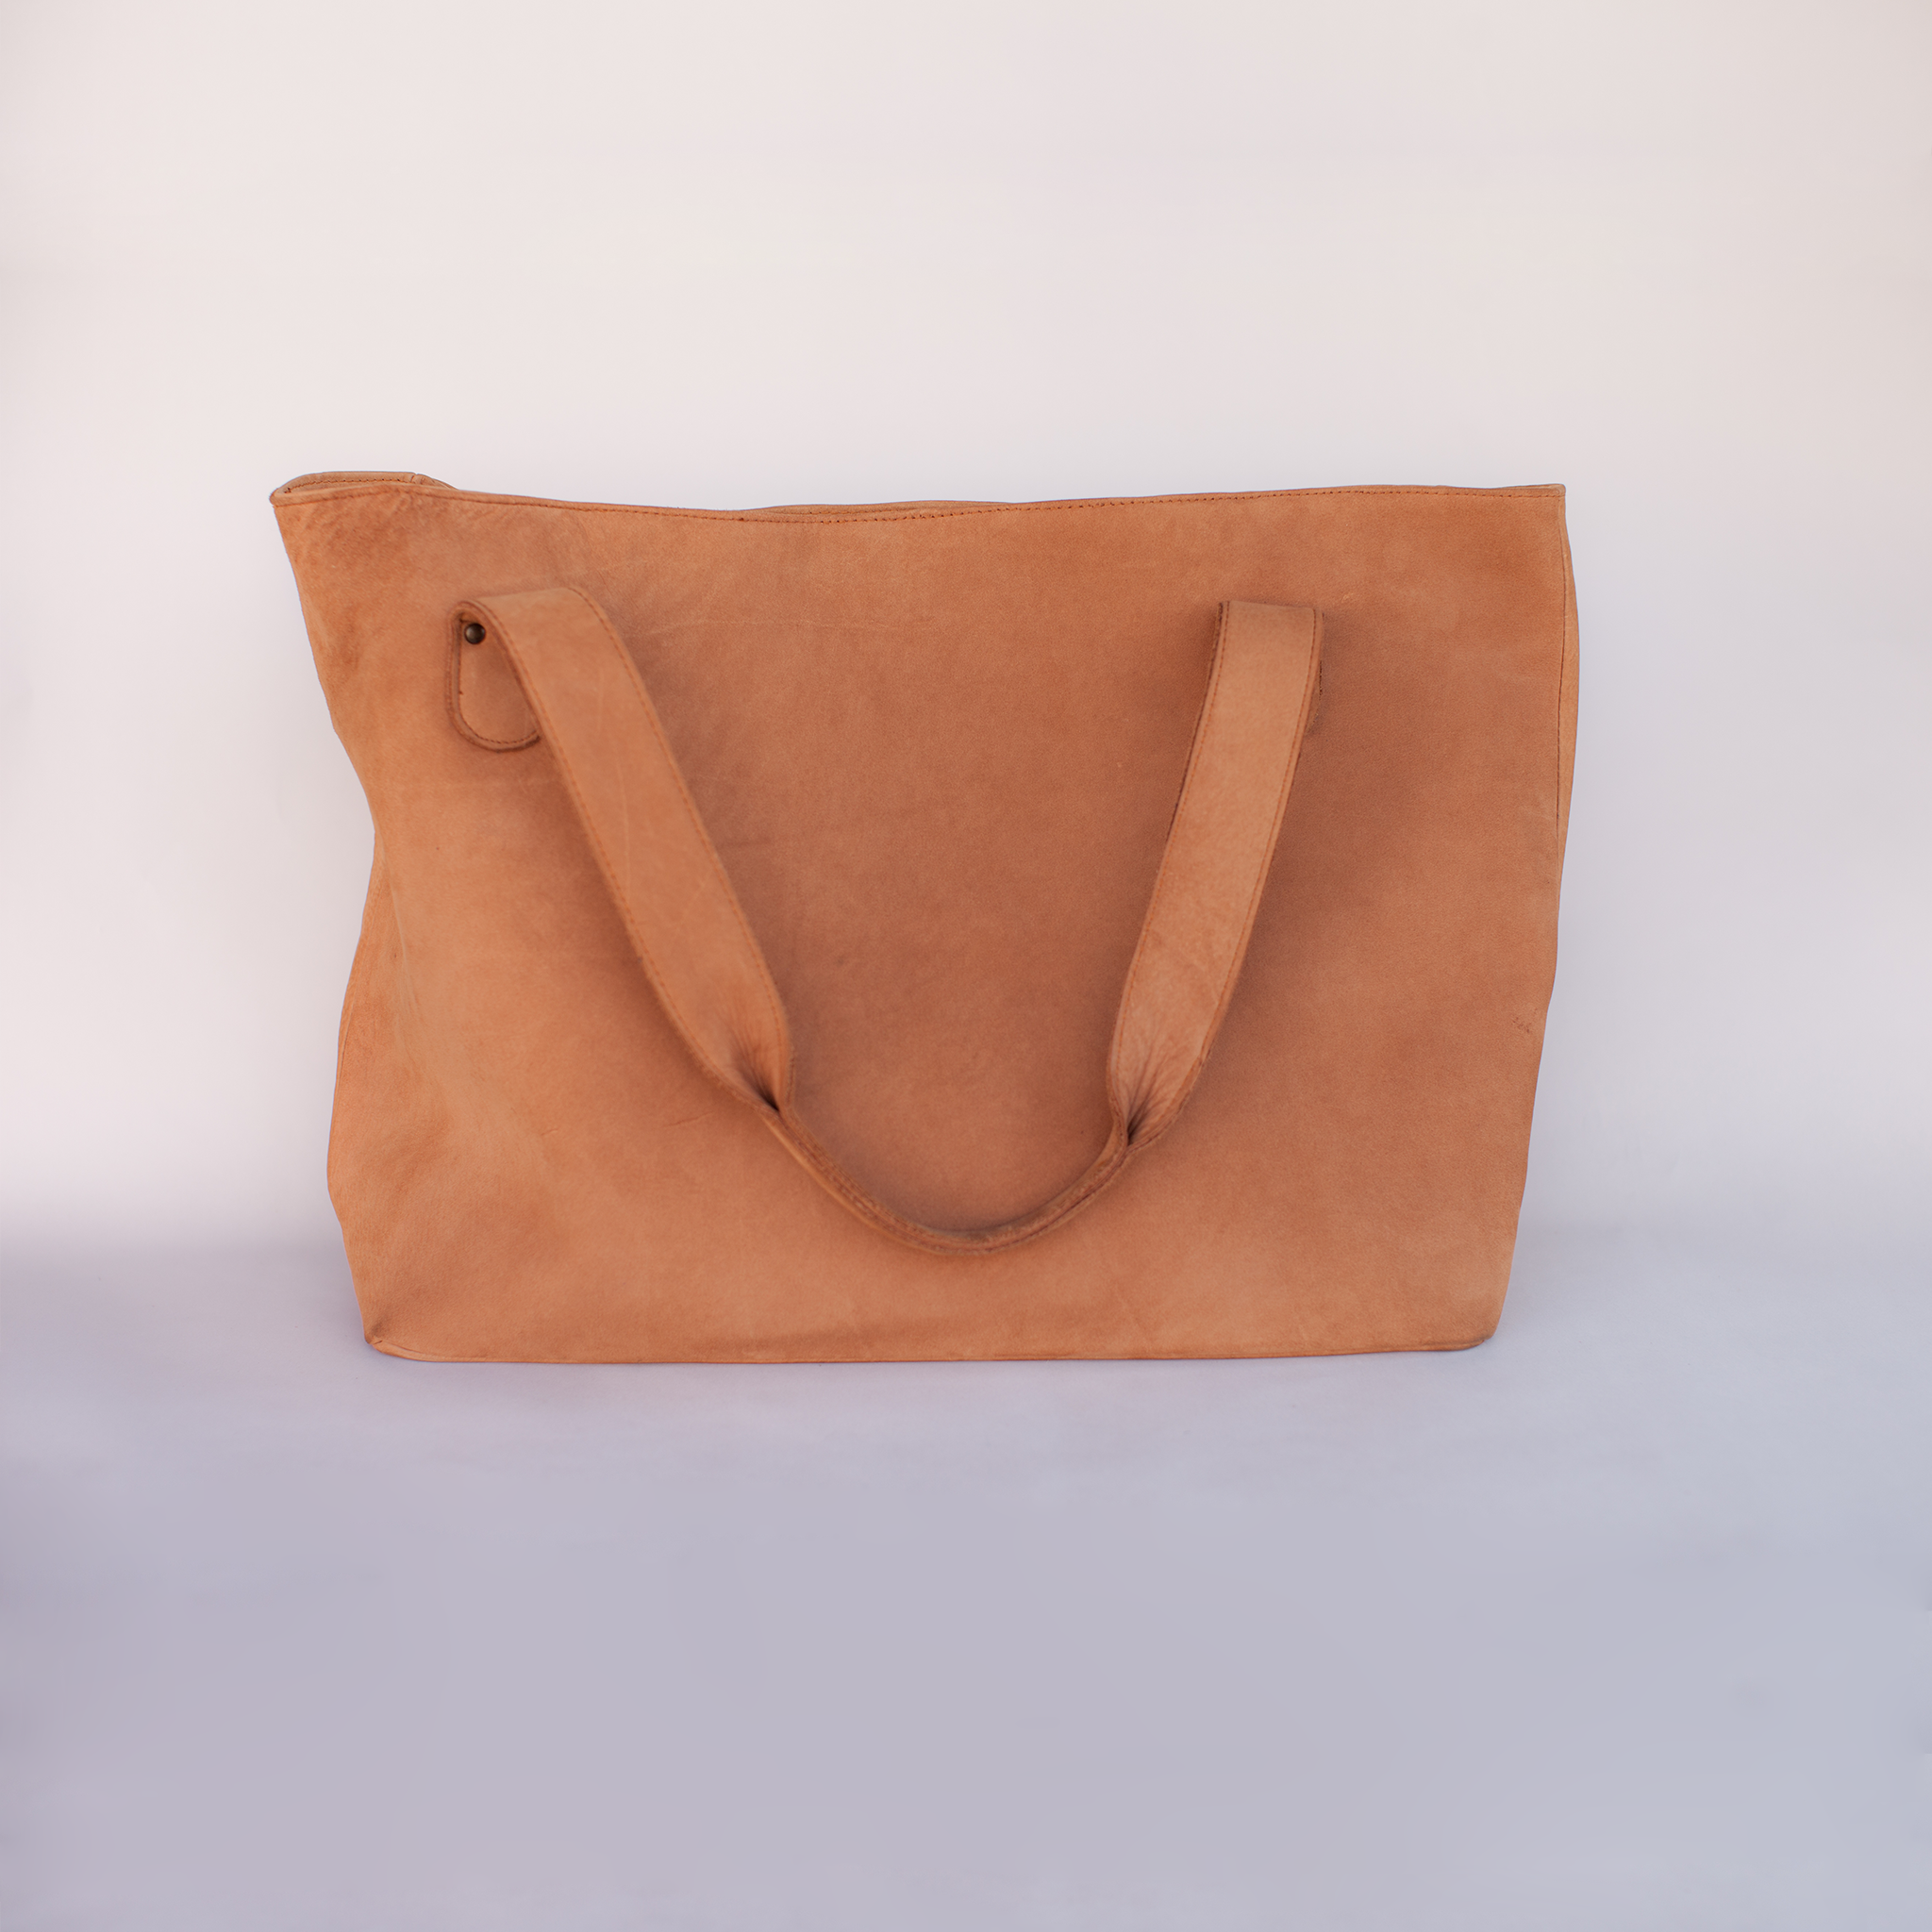 Prism Sofia Leather Bag